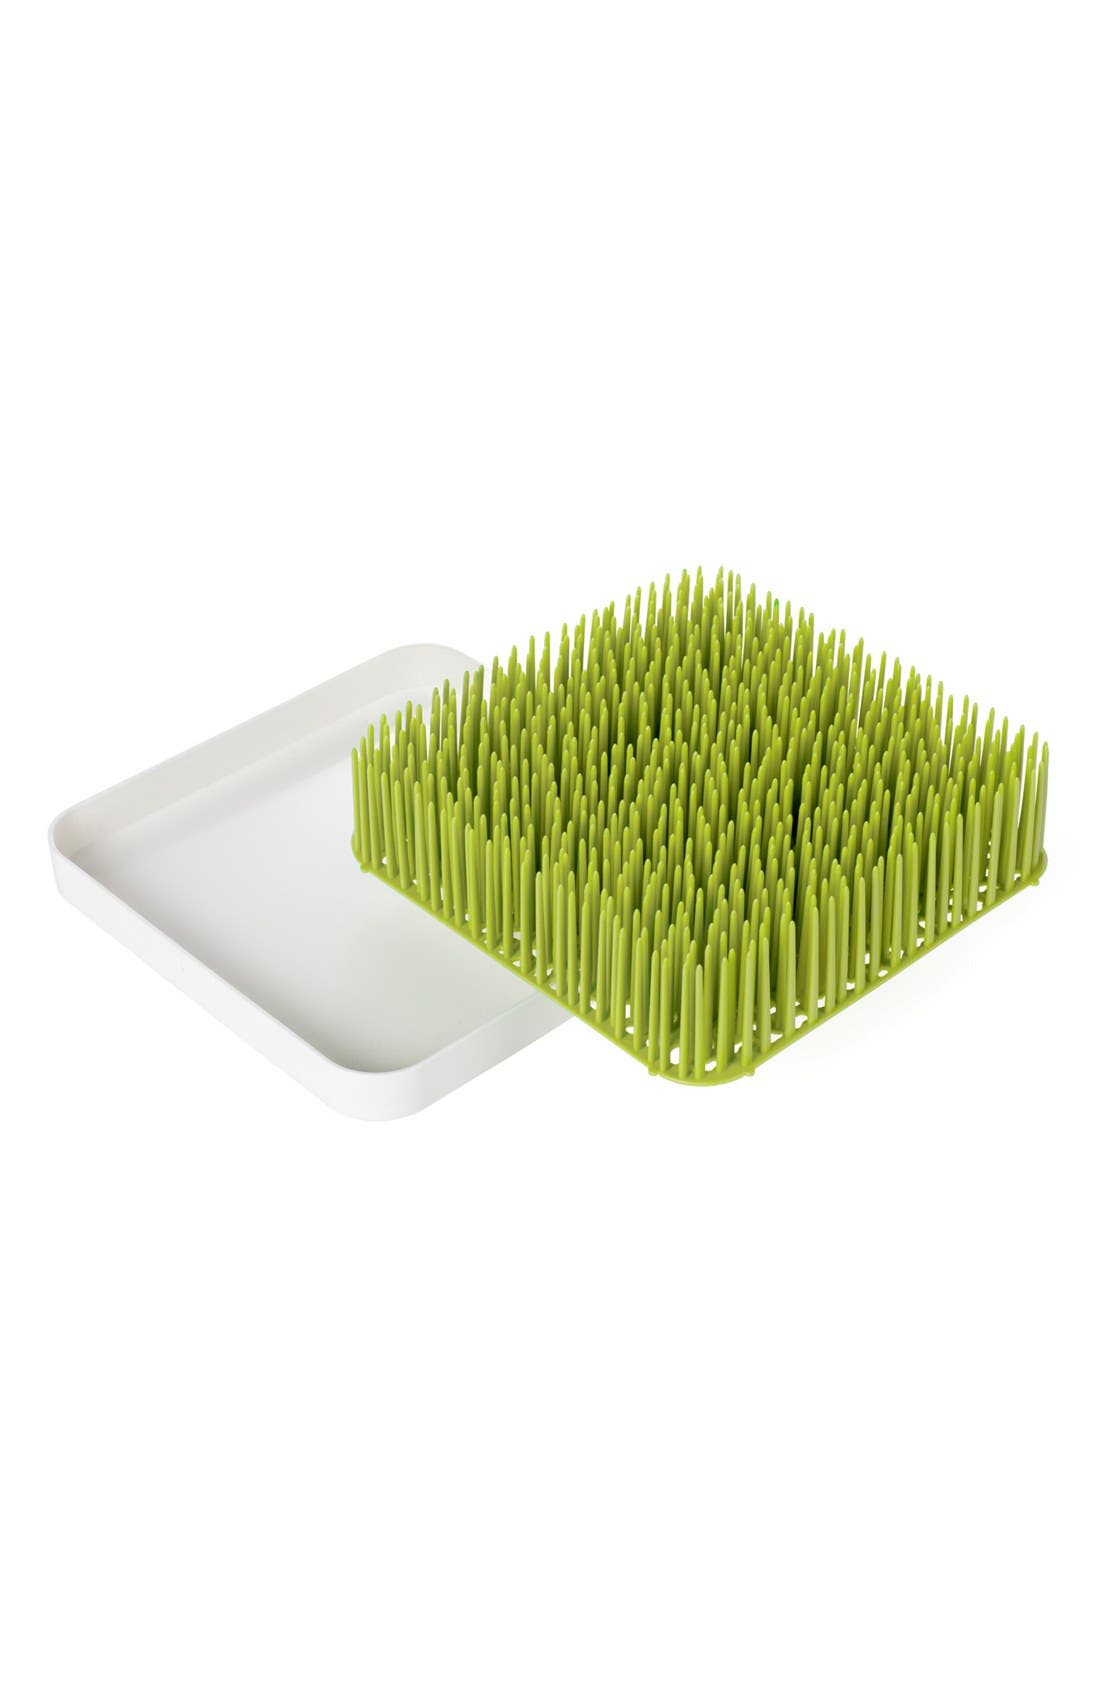 'Lawn' Drying Rack,                         Main,                         color, Green And White